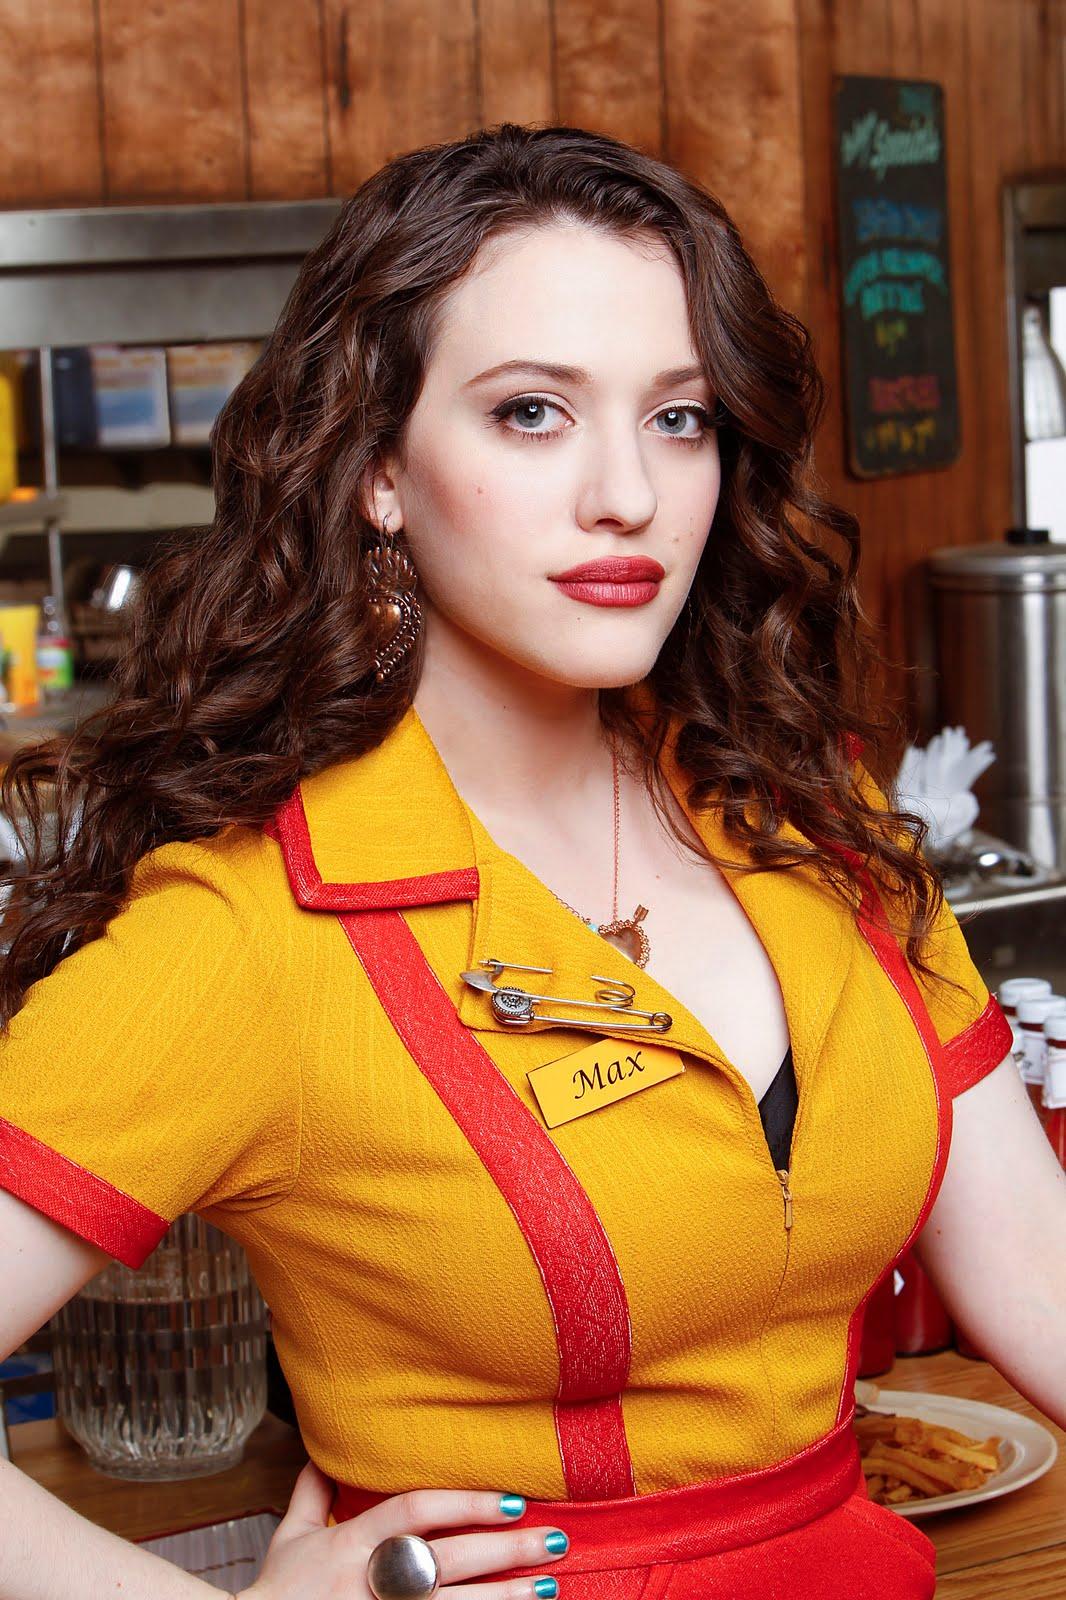 Max 2 Broke Girls HD Wallpaper